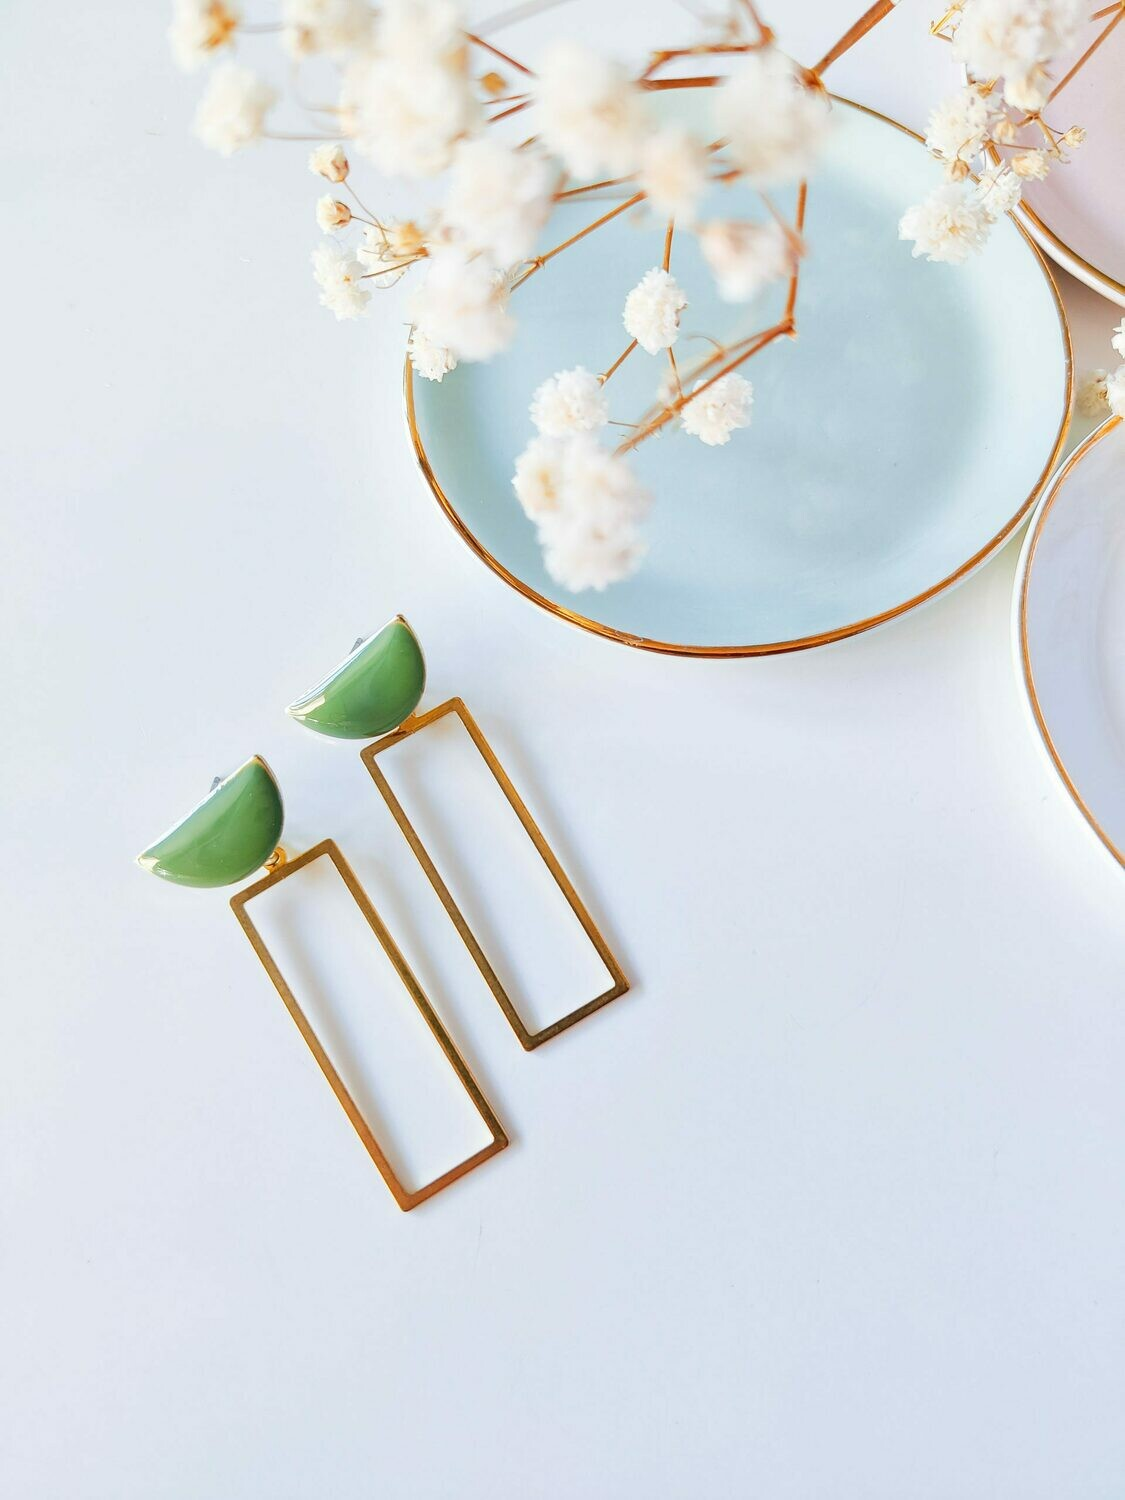 Isa & Roza | Golden ear hangers with moss green stud